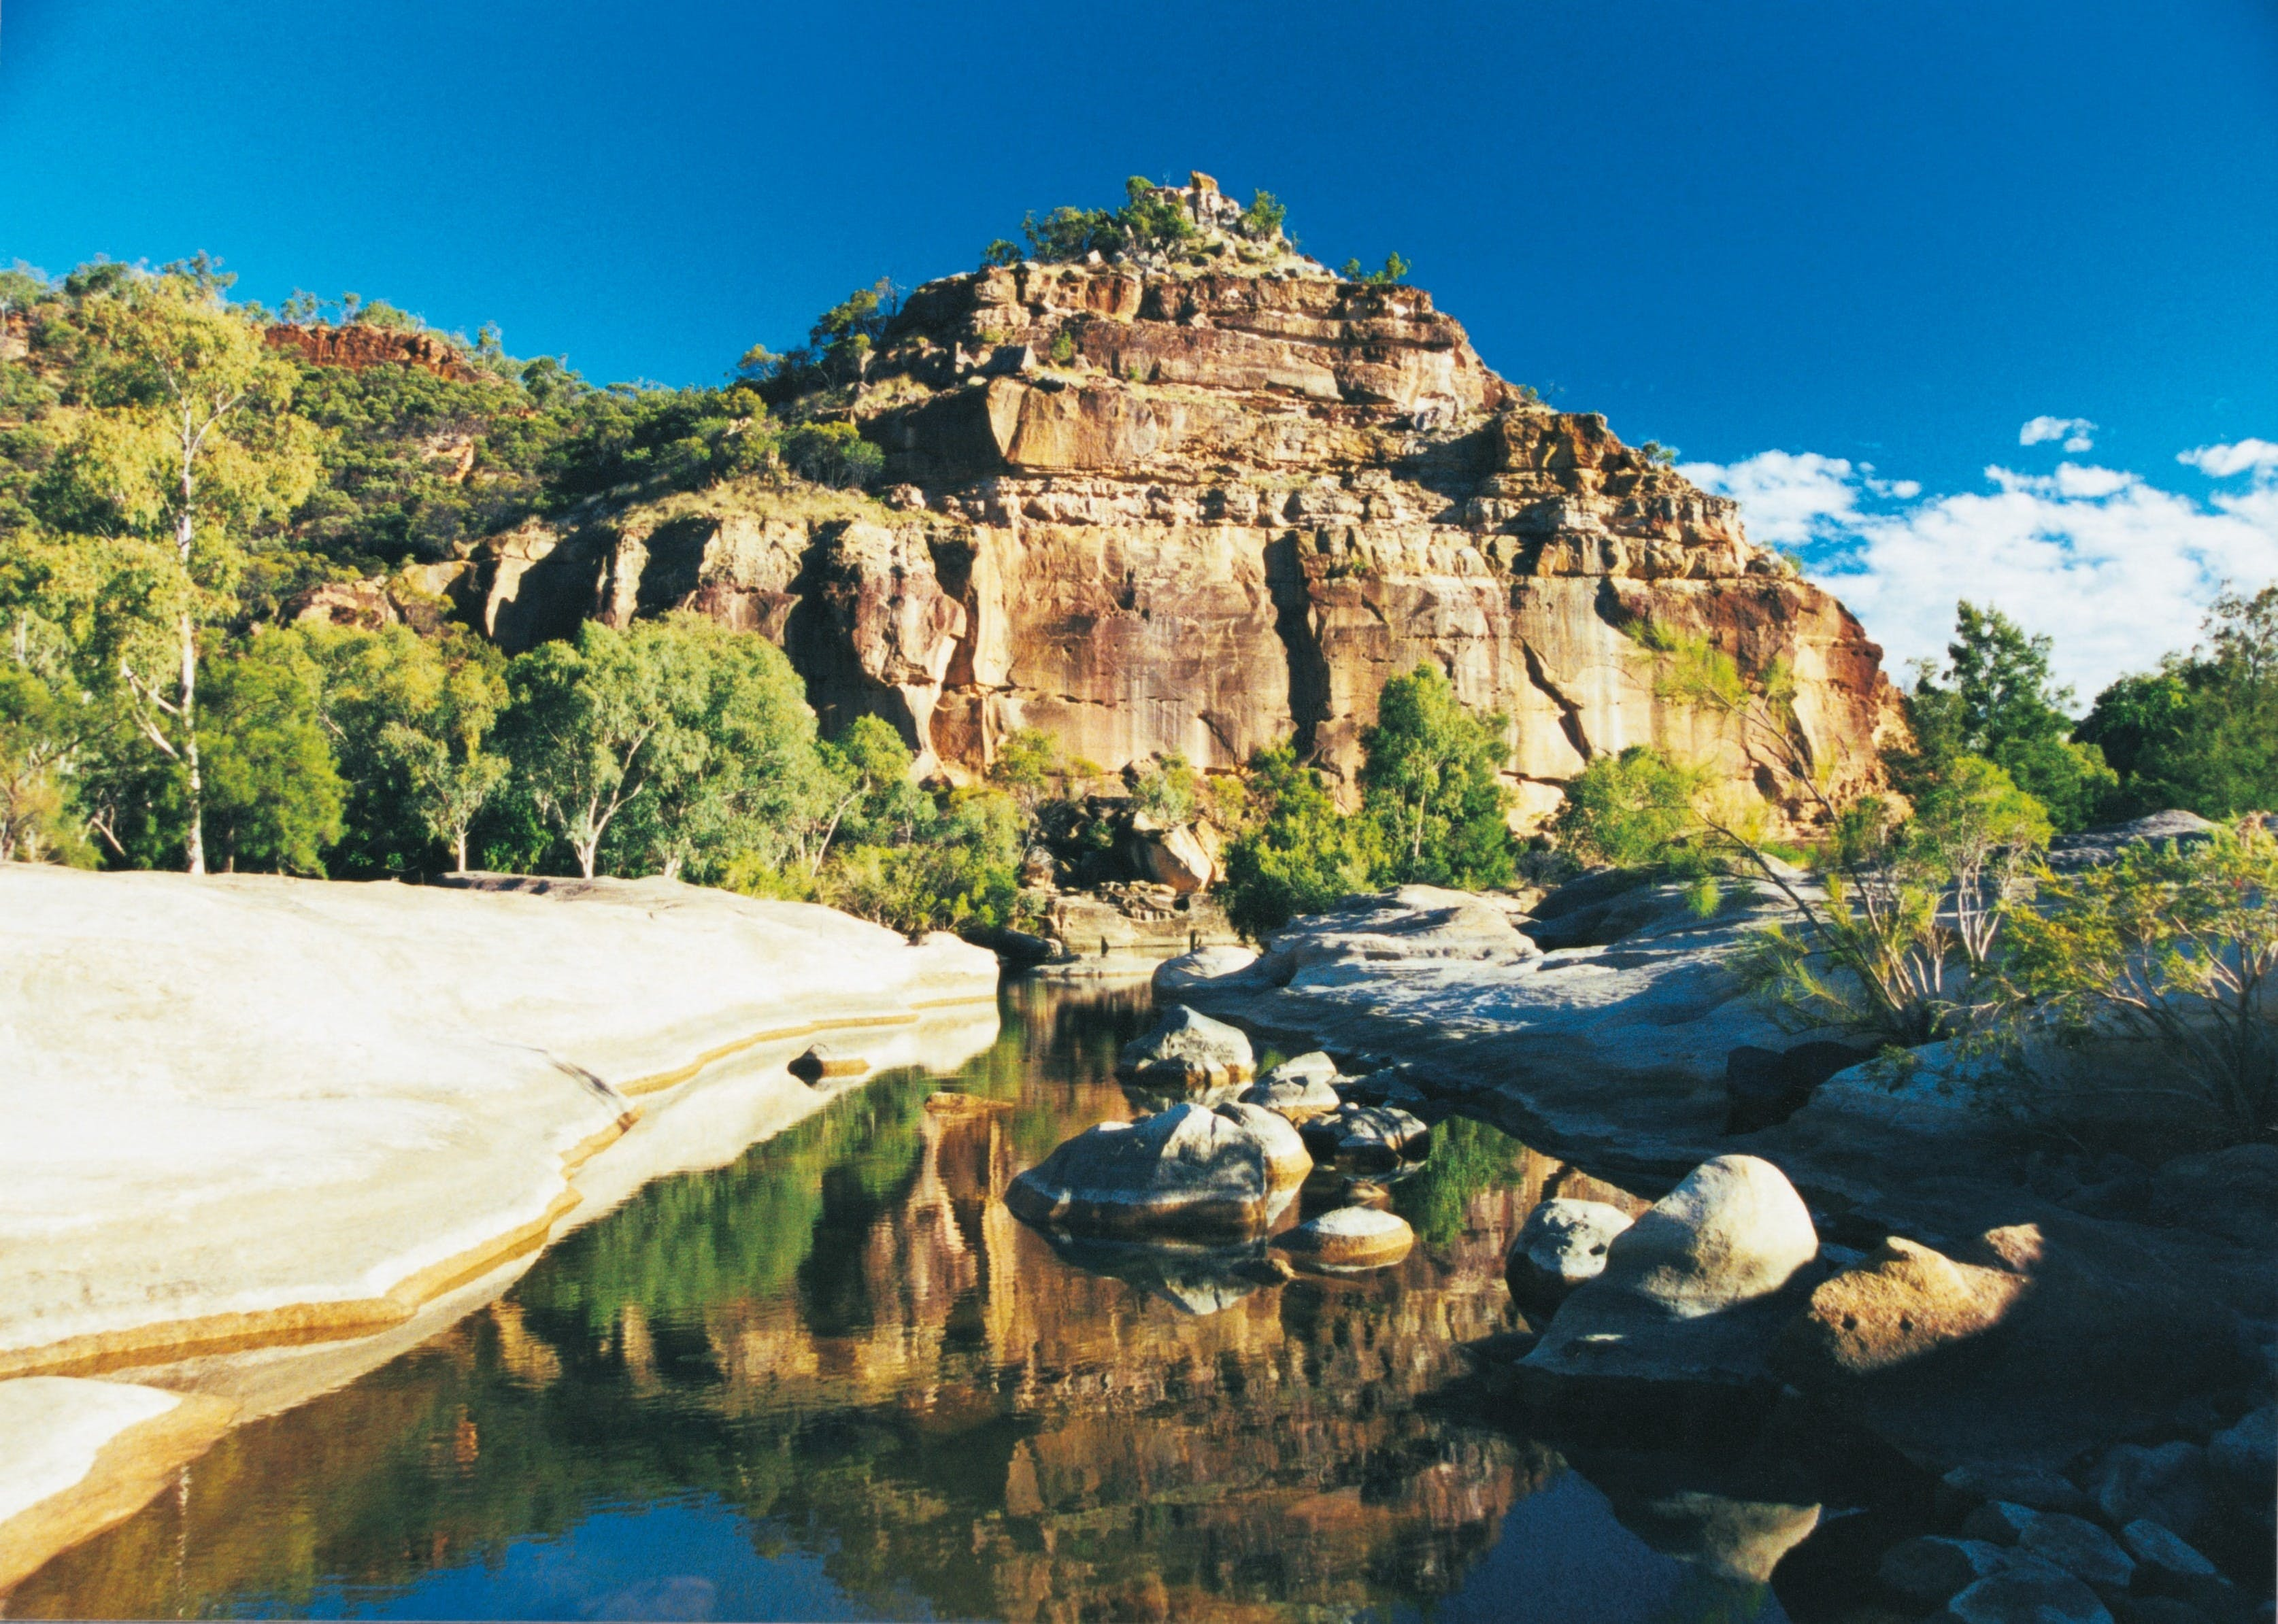 Porcupine Gorge National Park - Accommodation Sunshine Coast